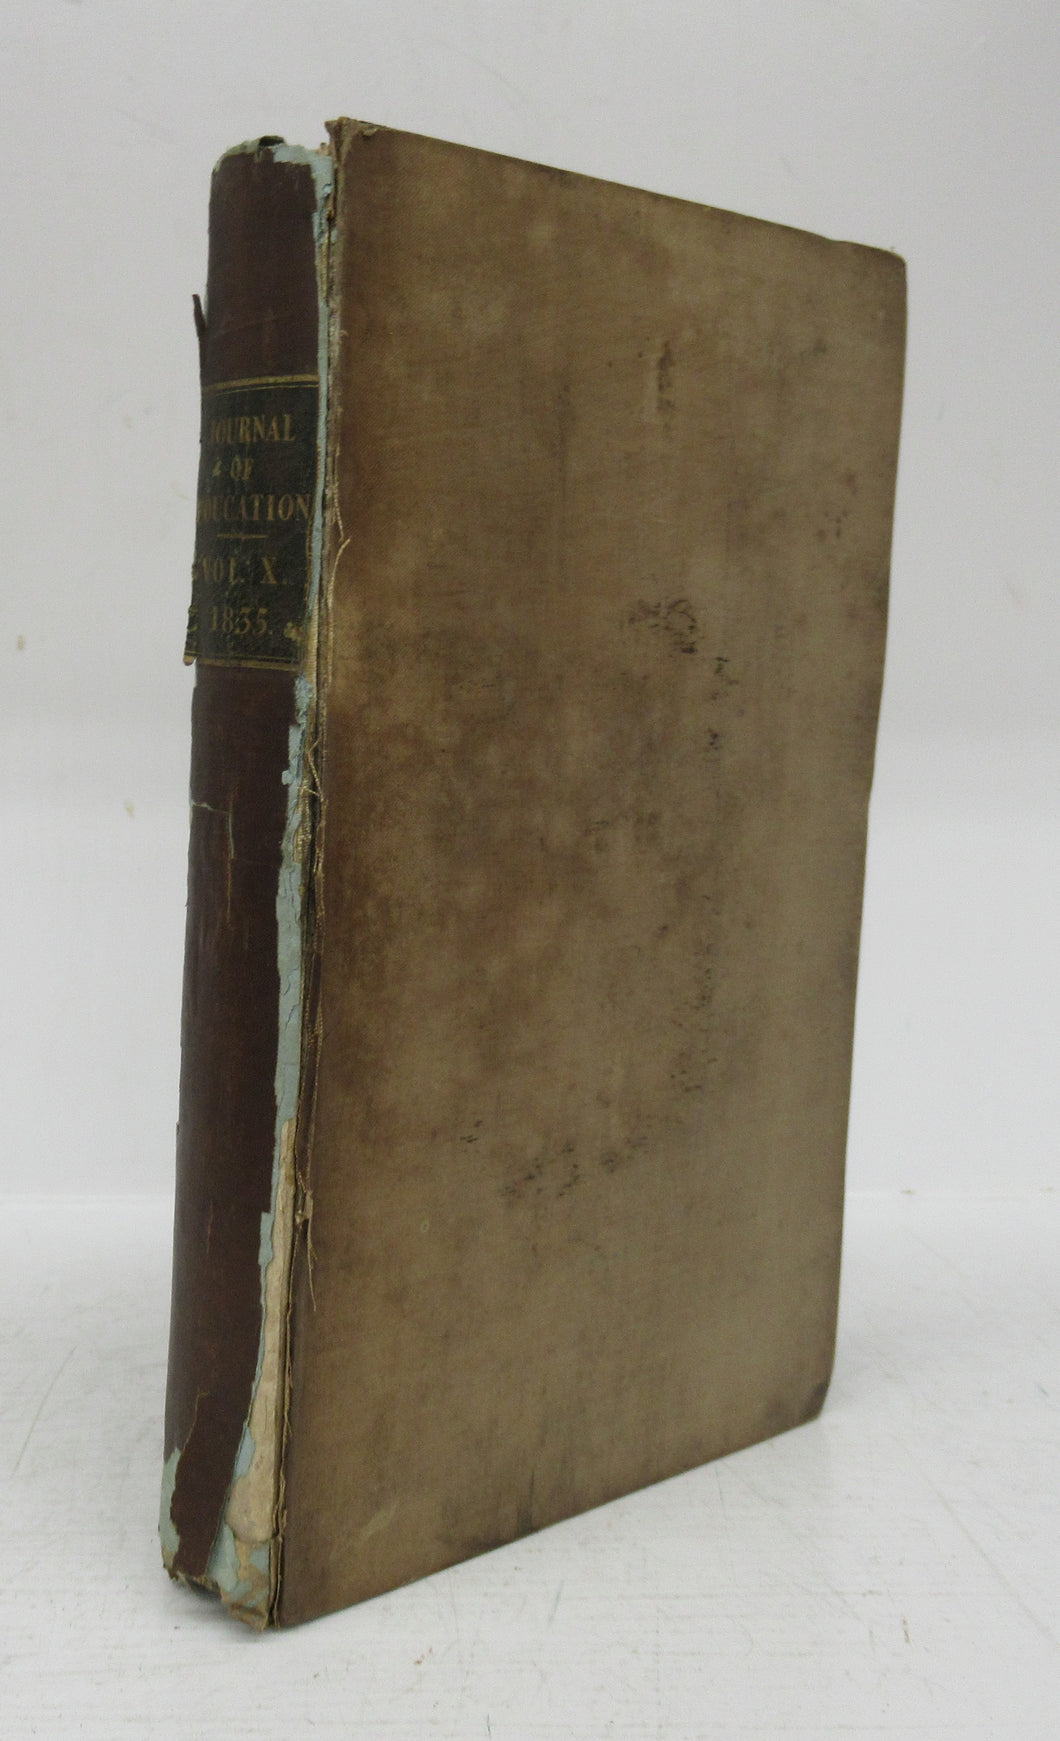 The Quarterly Journal of Education 1835